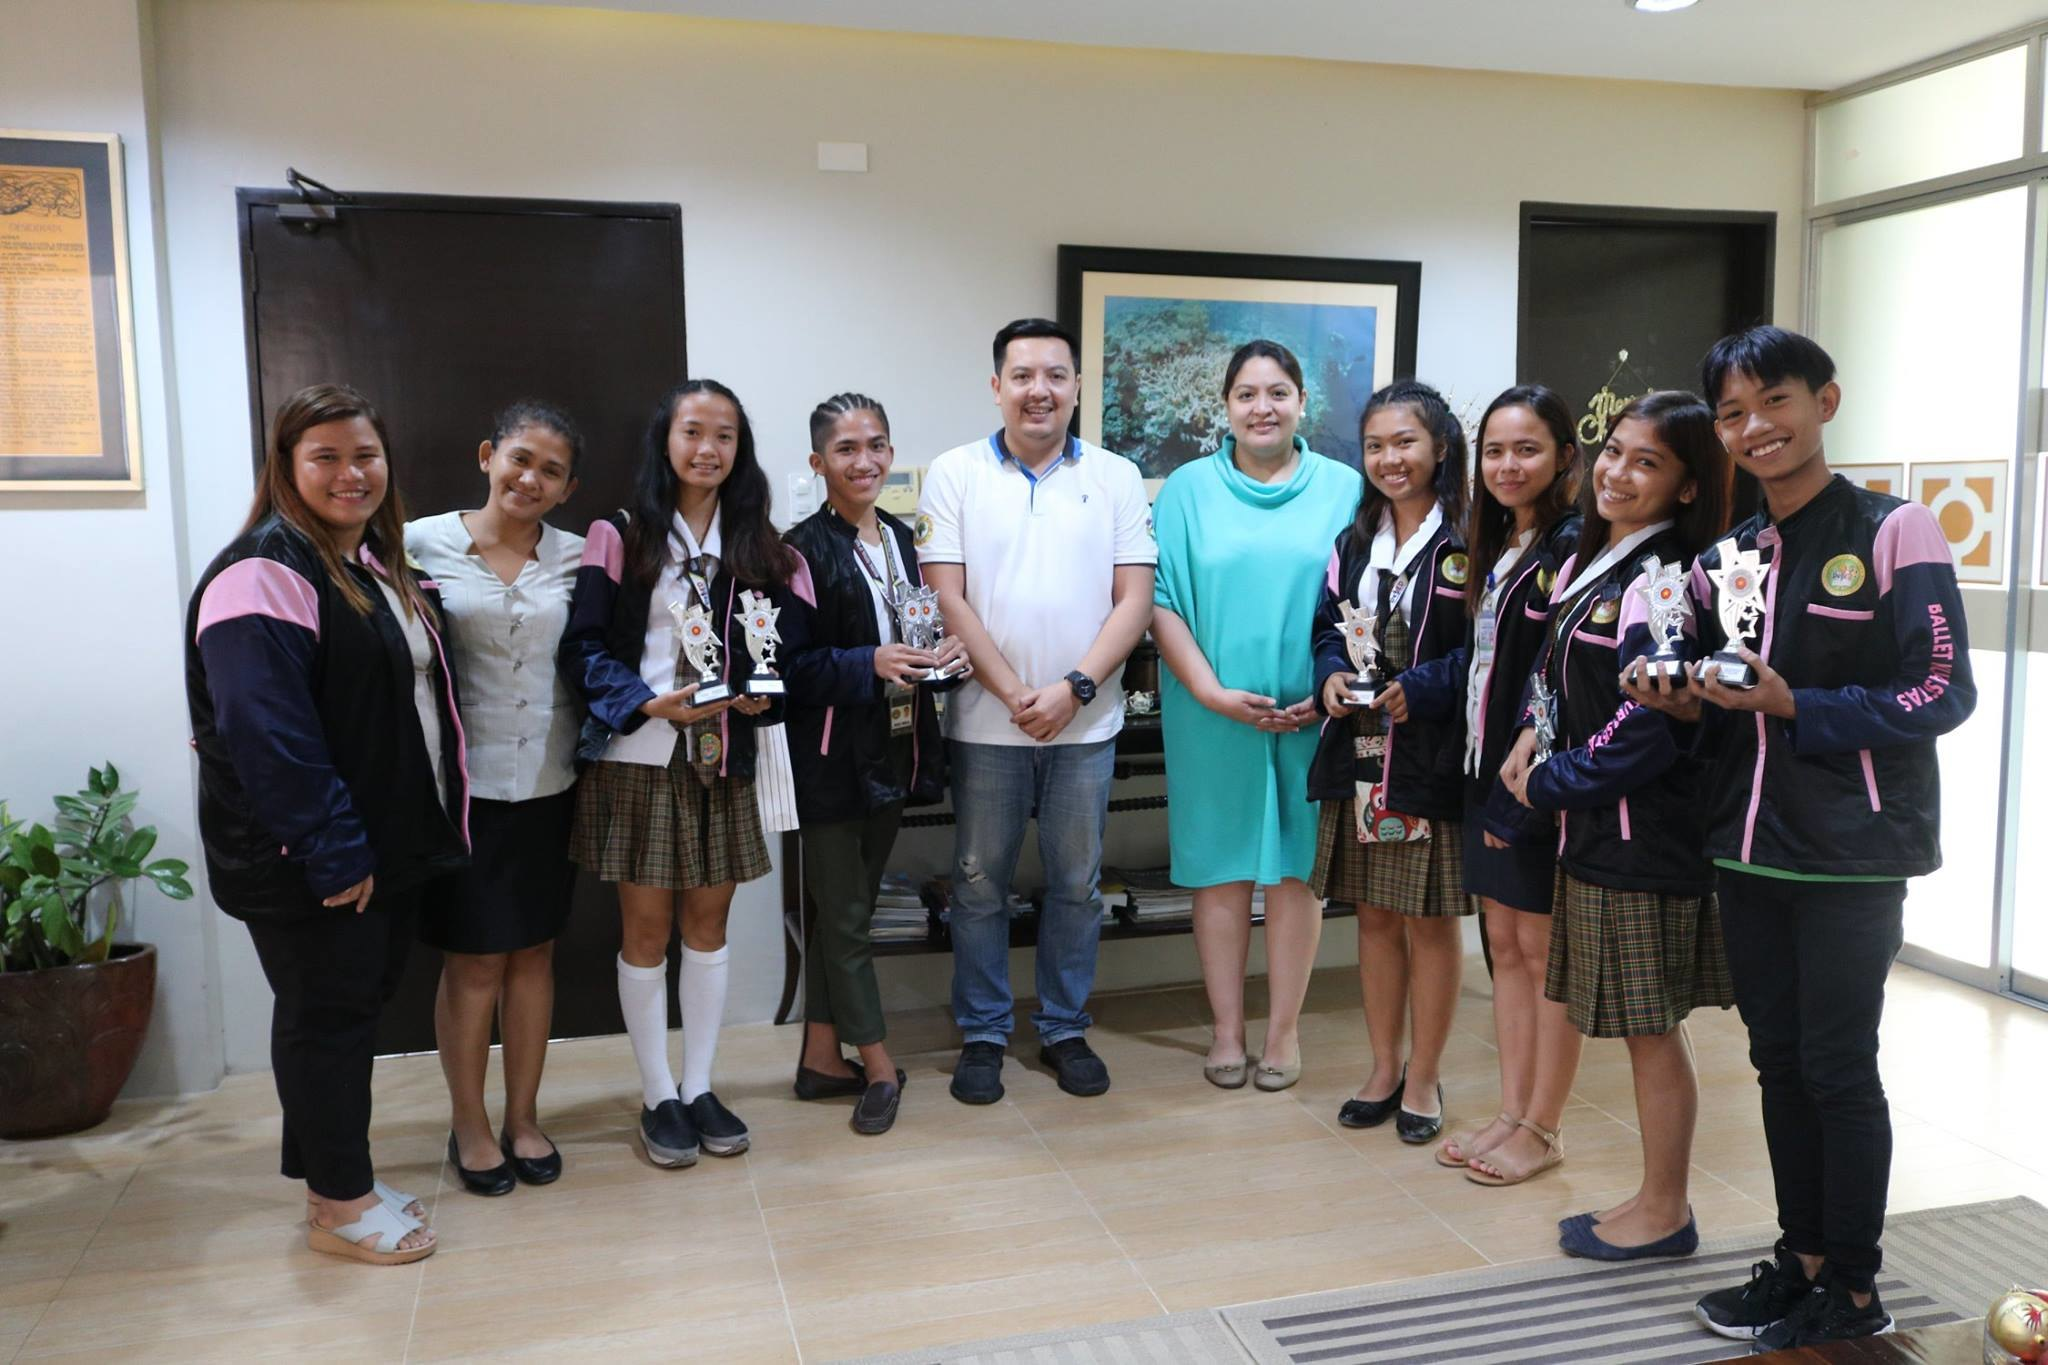 Mayor of Bogo, Carlo Martinez with the Vice Mayor of Bogo, Mayel Martinez with the City of Bogo Science and Arts students.